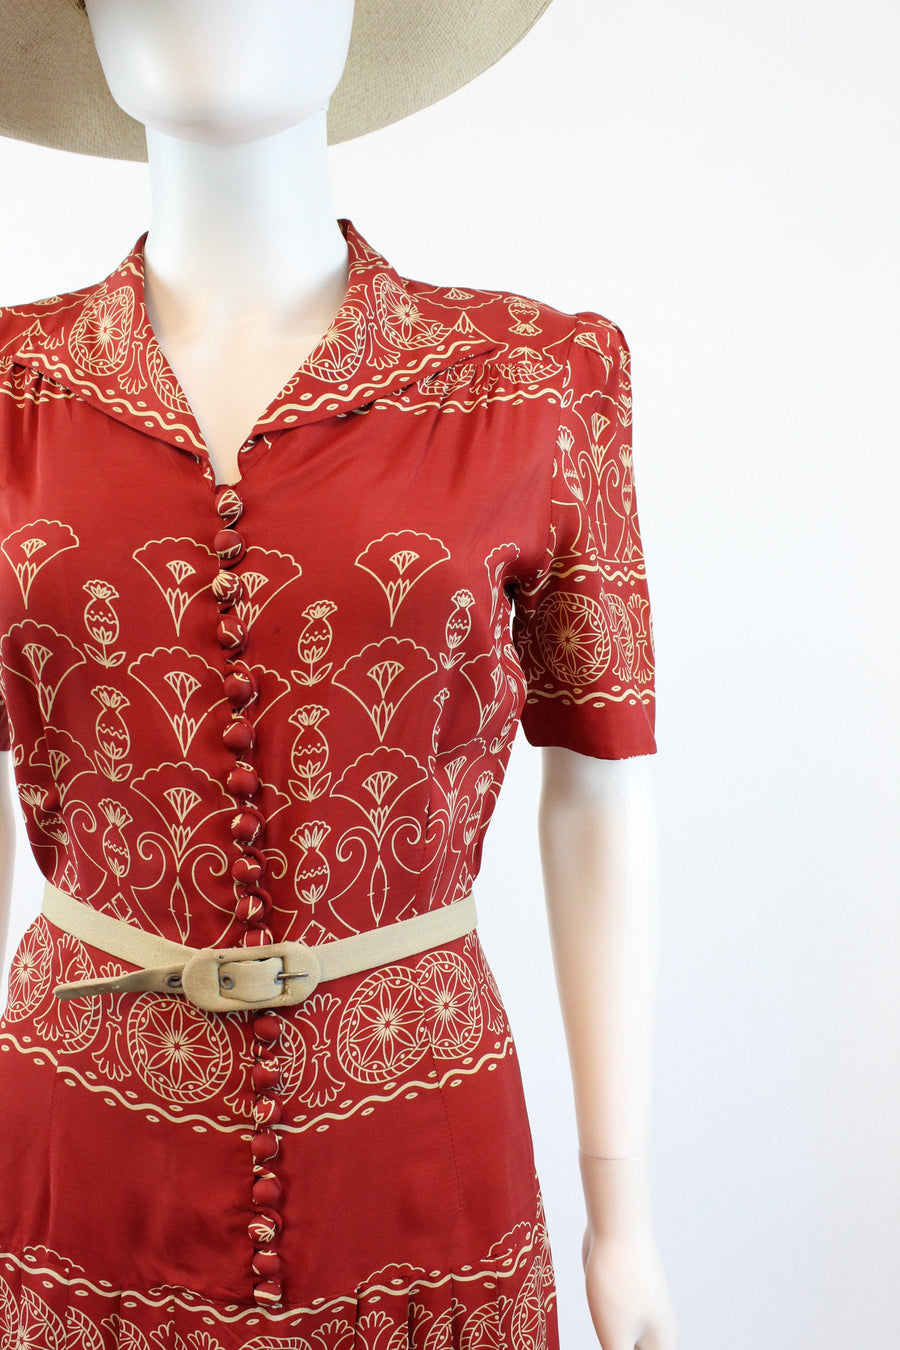 1930s 1940s Georgiana Frocks cold rayon dress xsmall  | vintage moroccan print  | new in